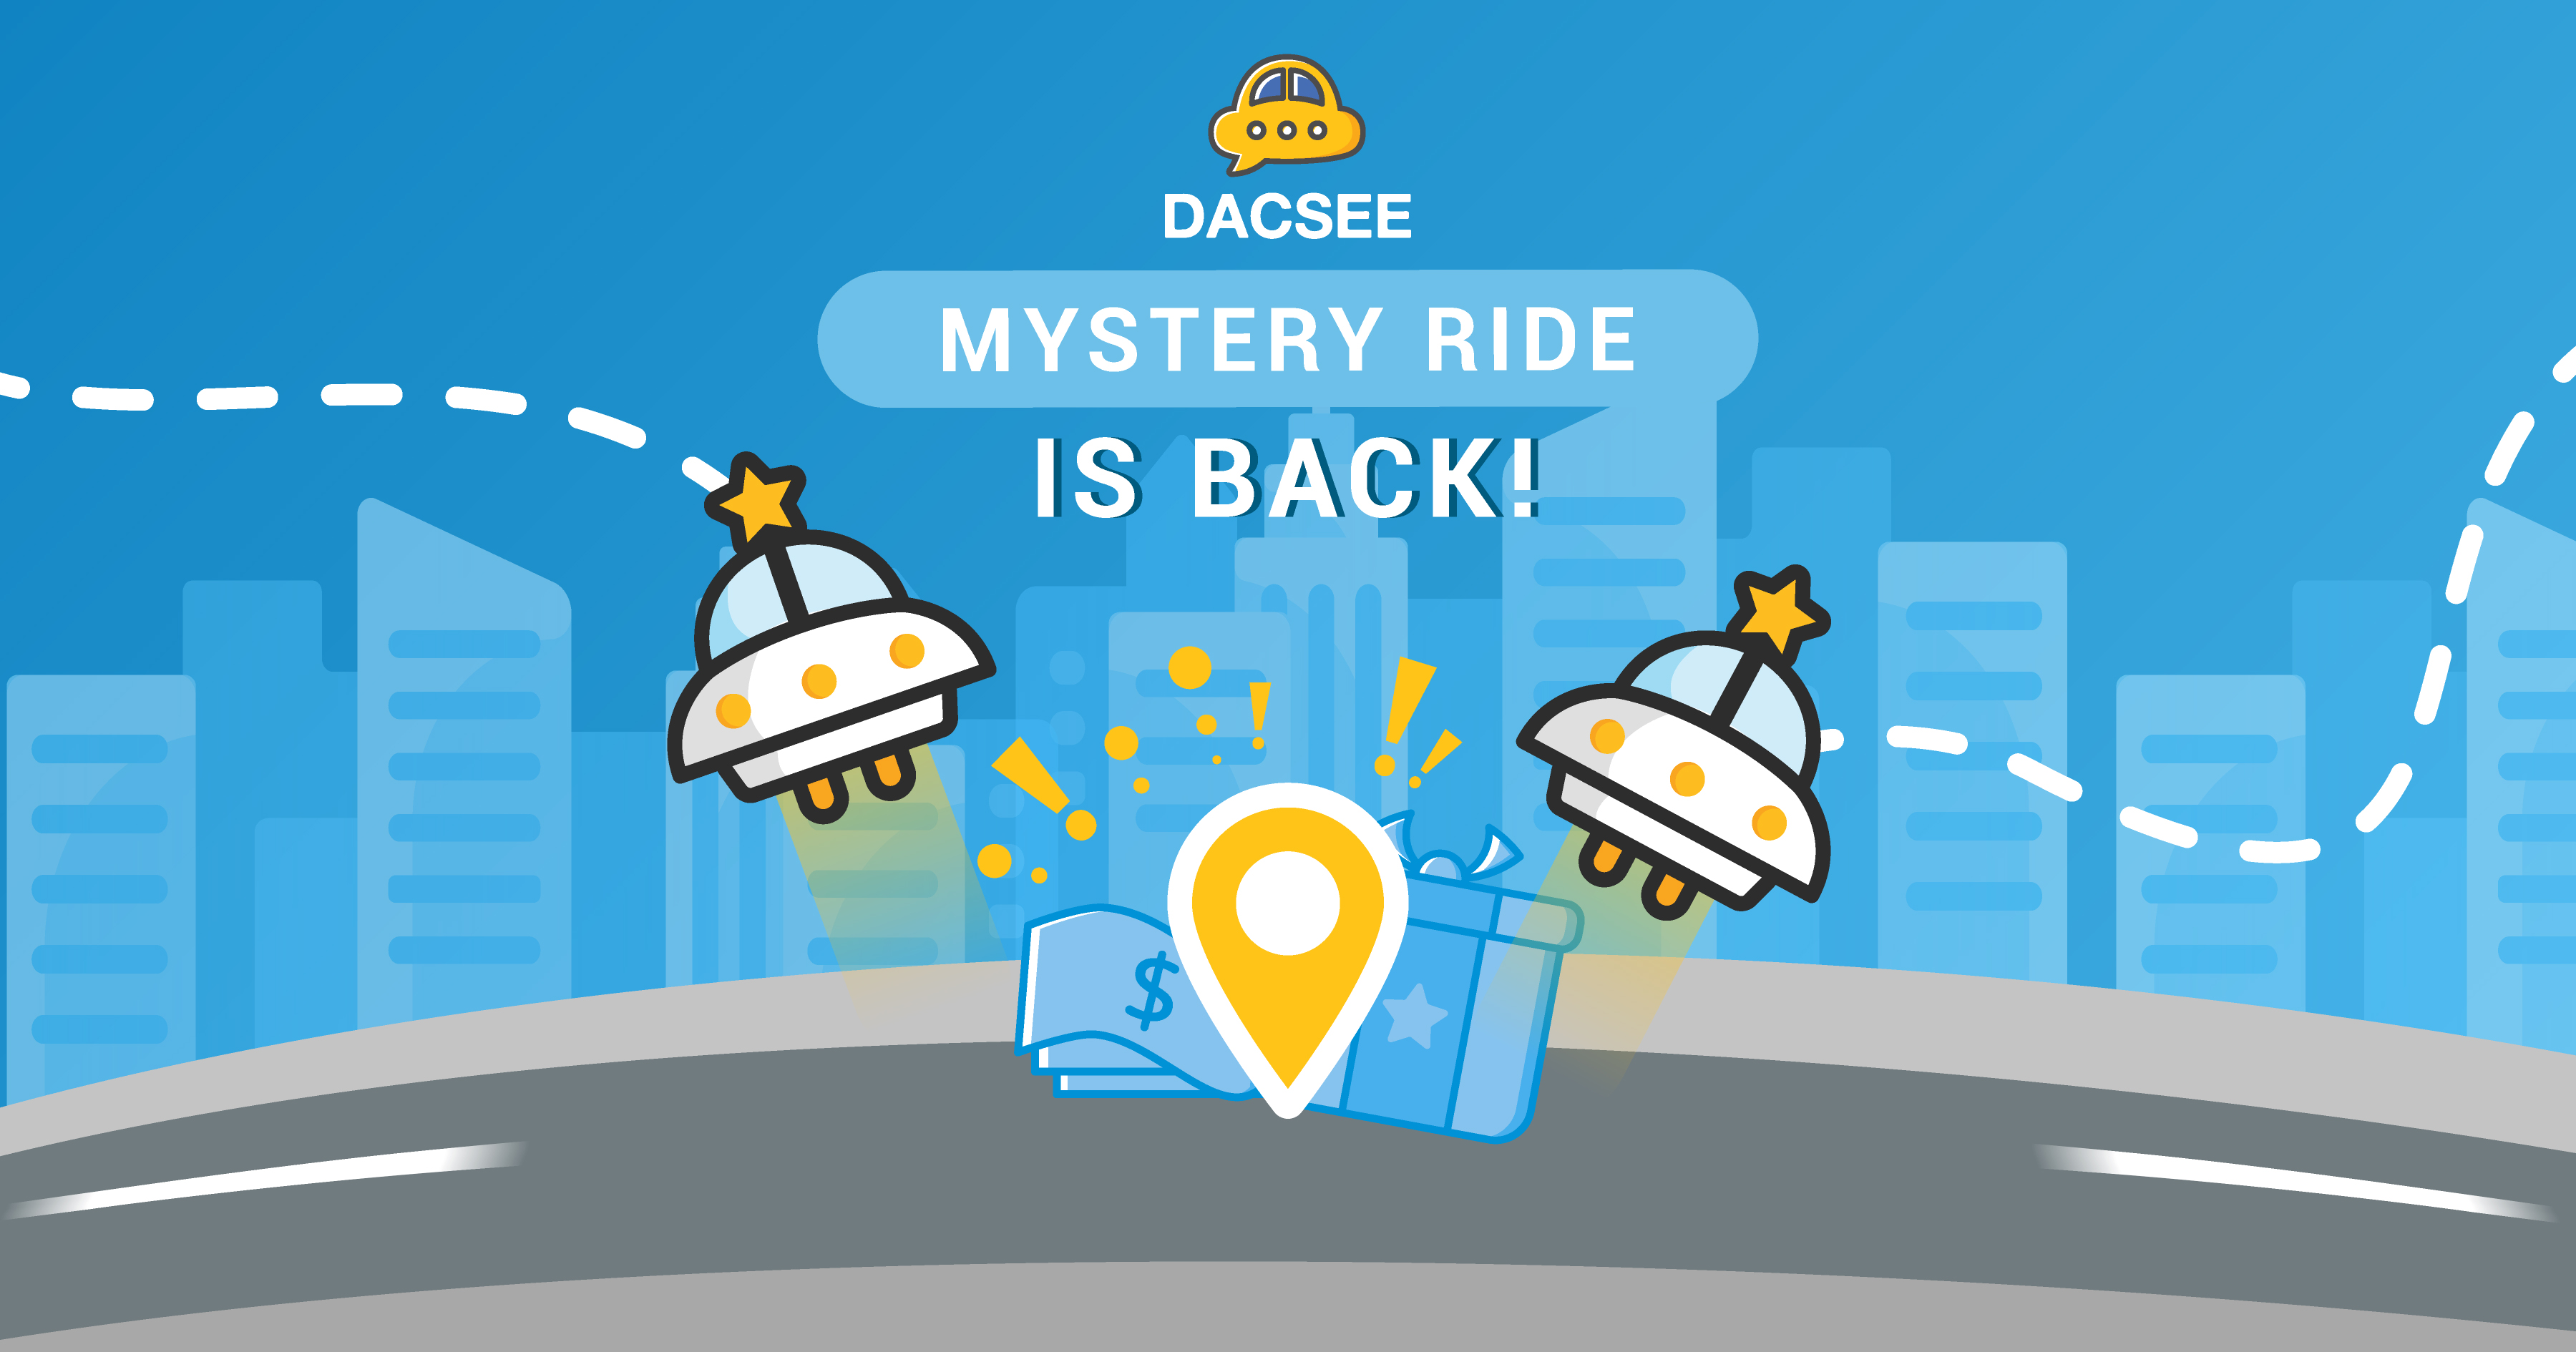 DACSEE Mystery Ride is Back!